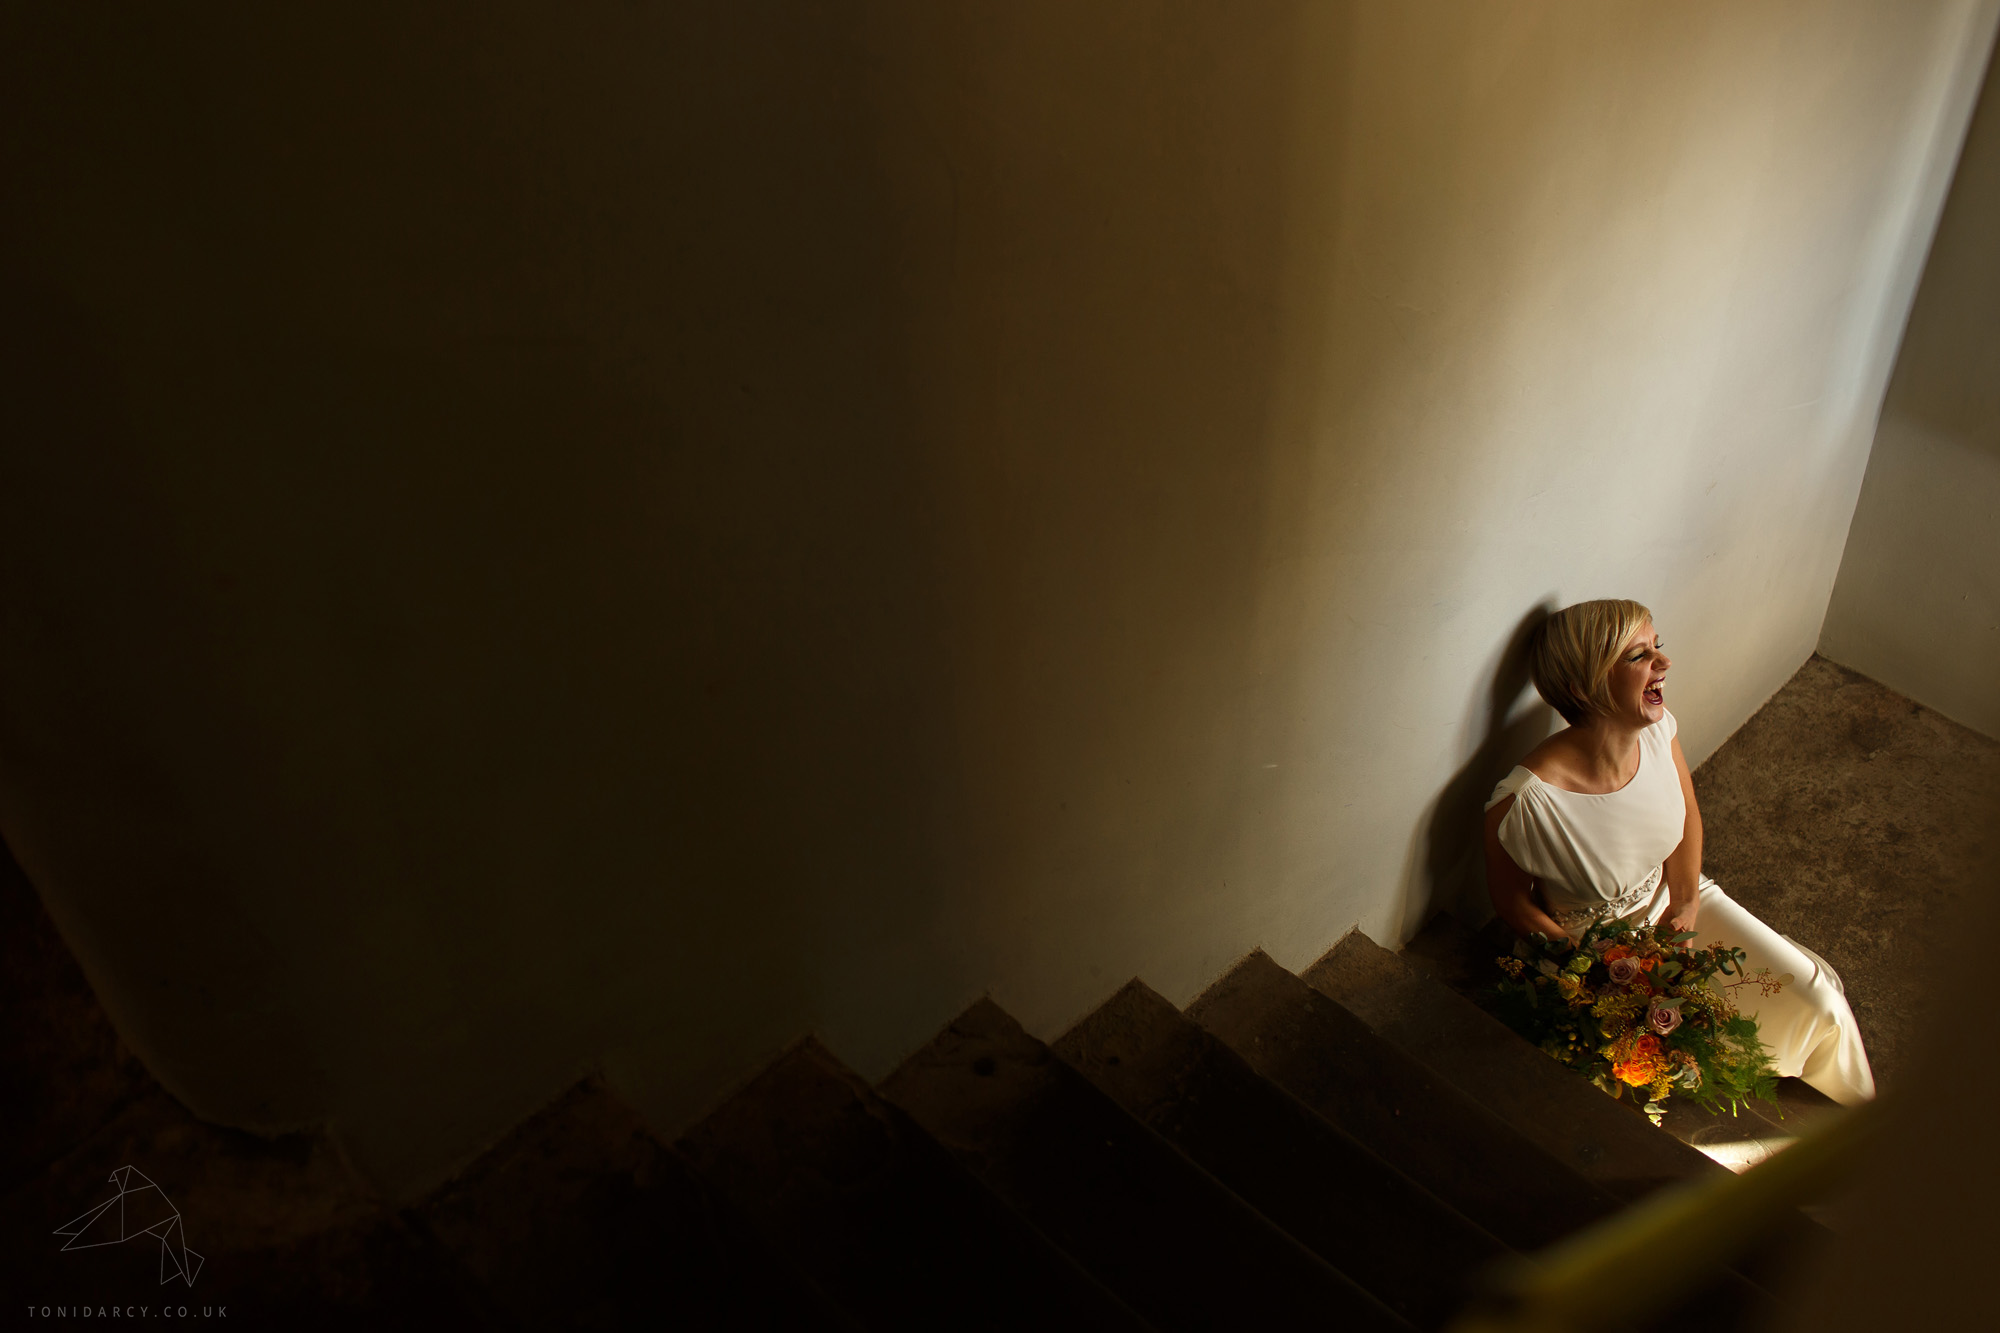 Online File - Holmes Mill Wedding Photography - Toni Darcy 008.PNG